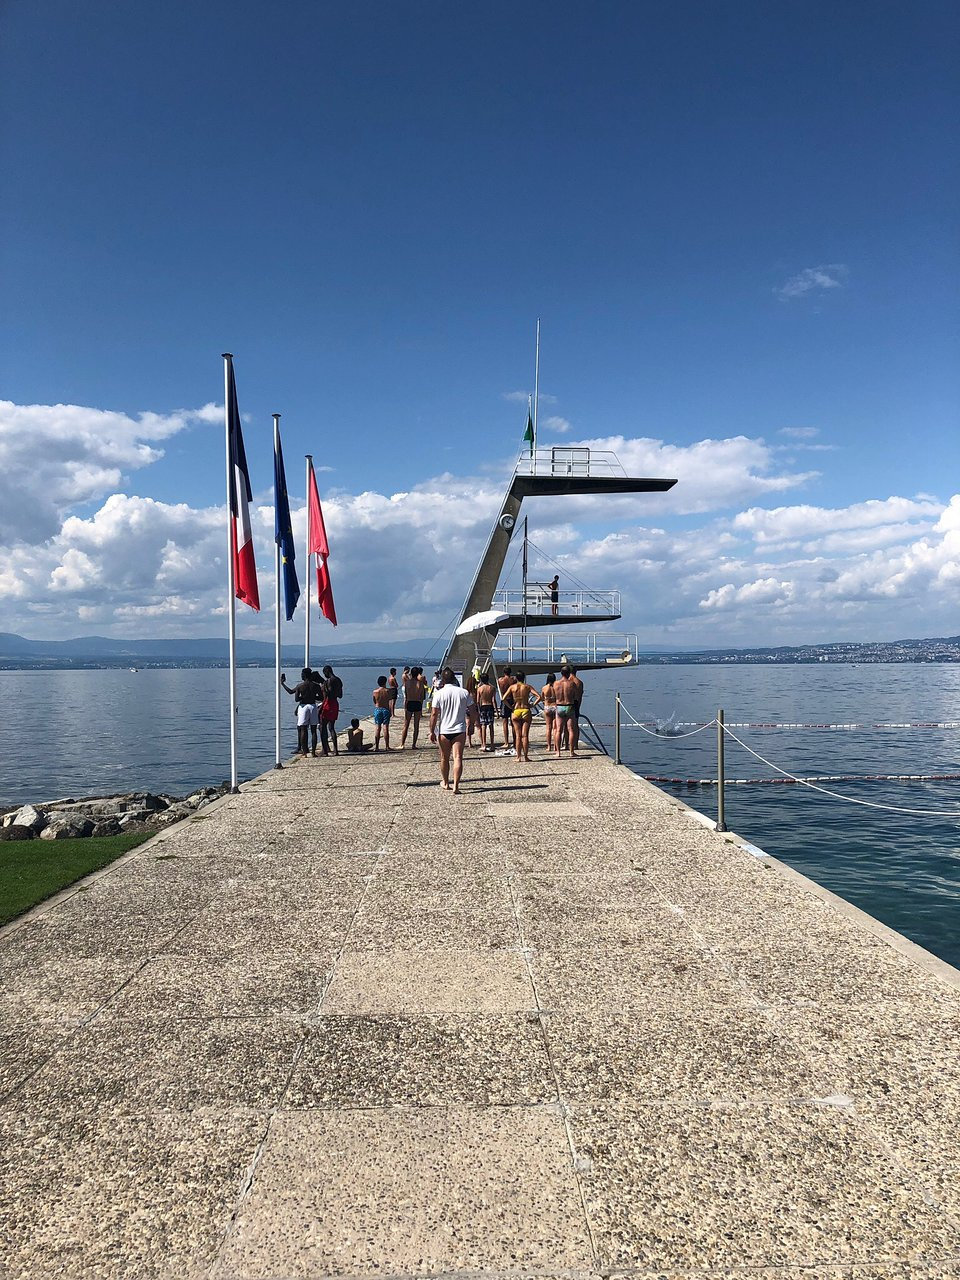 Evian Piscine (Evian-Les-Bains) - 2020 All You Need To Know ... tout Piscine Evian